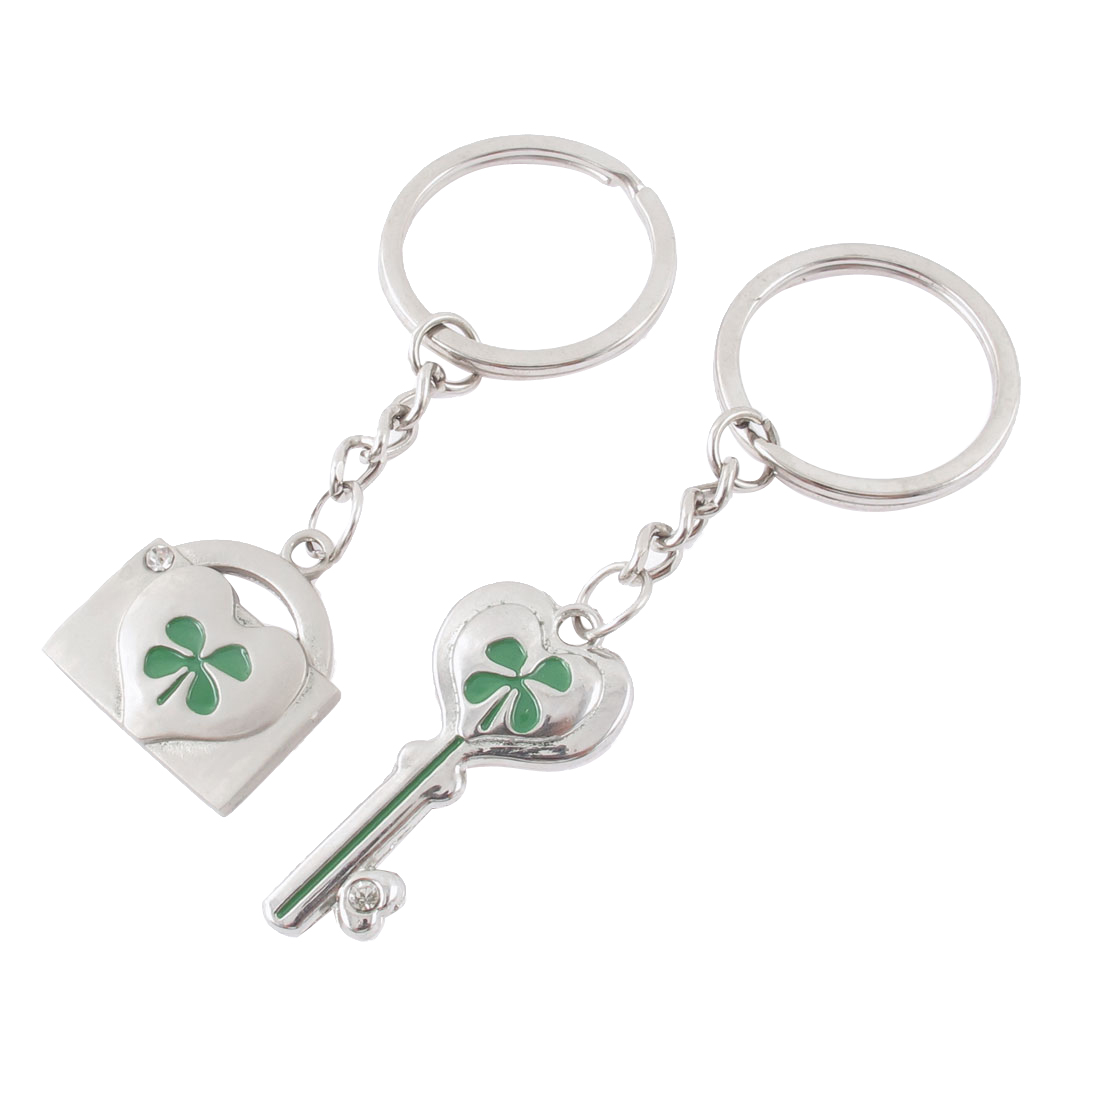 2 Pcs Four-leaf Clover Carved Key Lock Pendant Couple Keychain Keyring